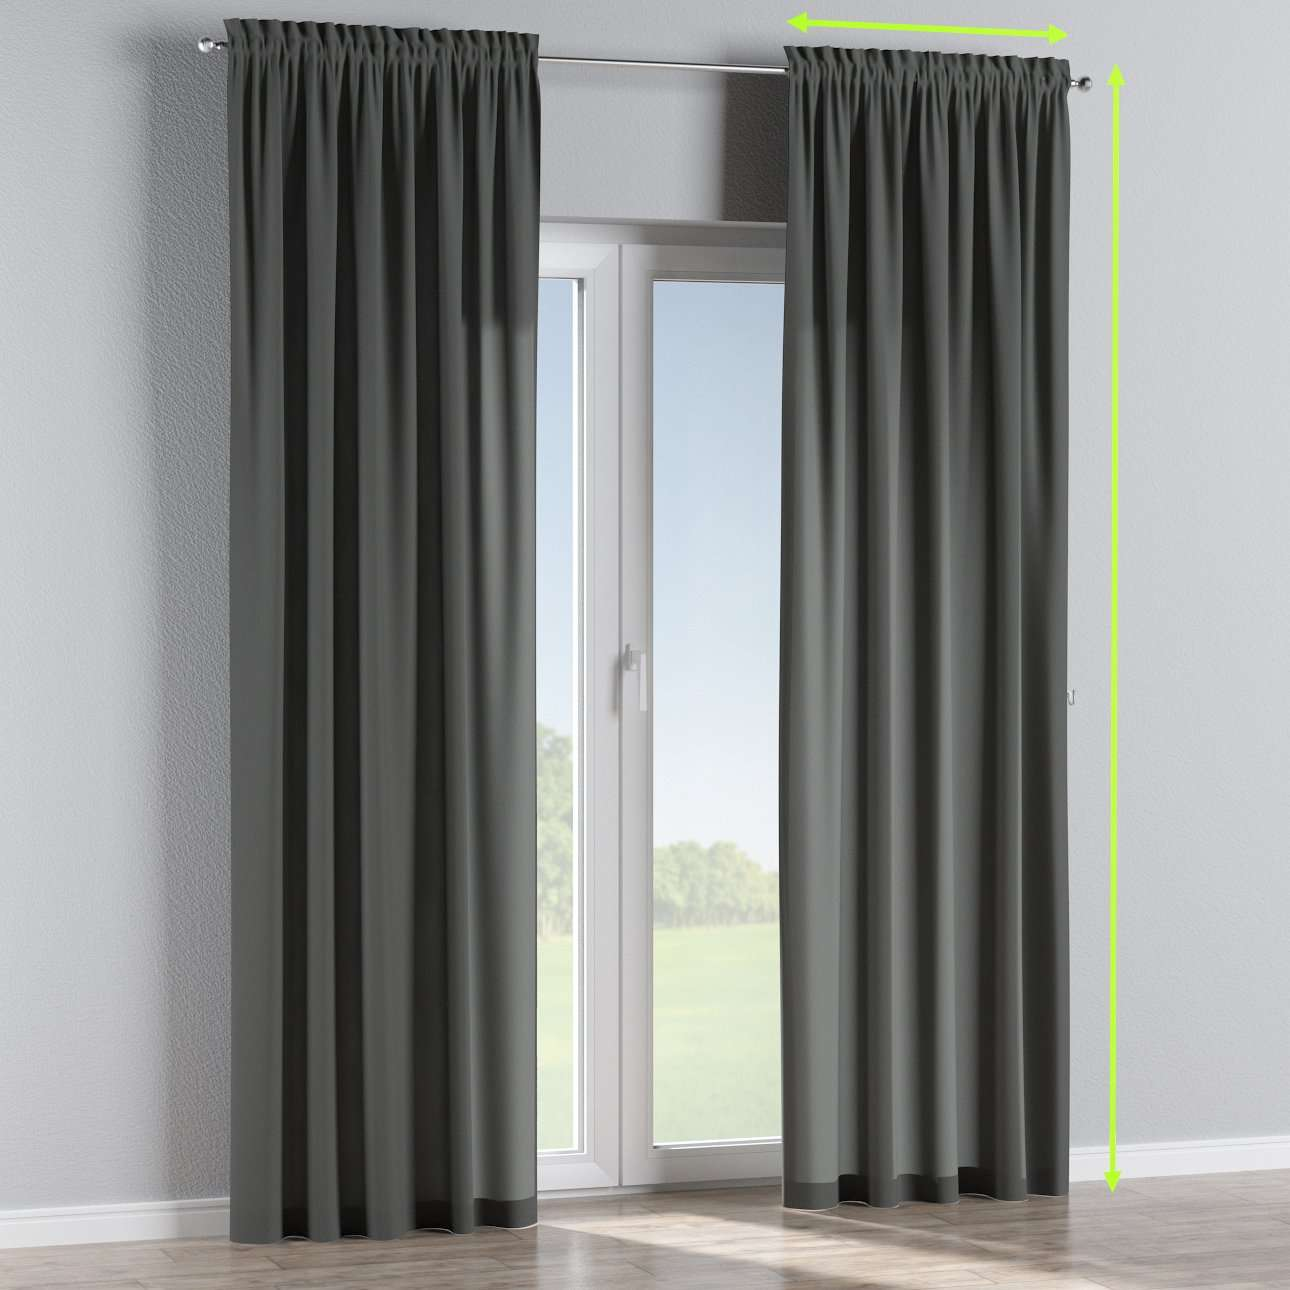 Slot and frill lined curtains in collection Quadro, fabric: 136-14